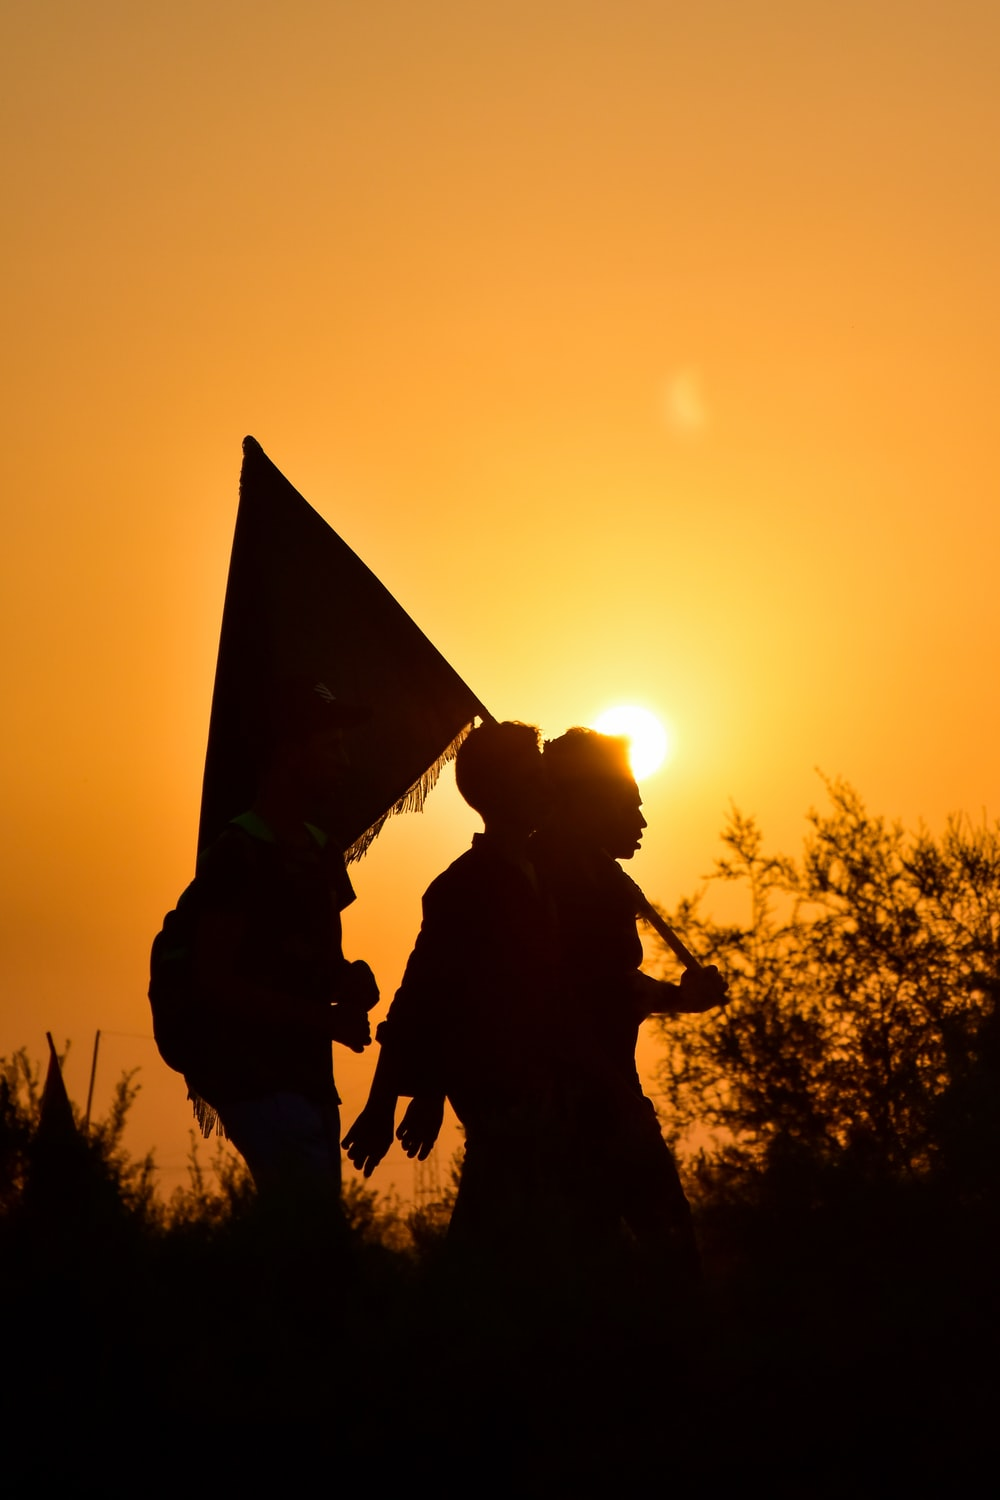 silhouette of man holding flag during sunset